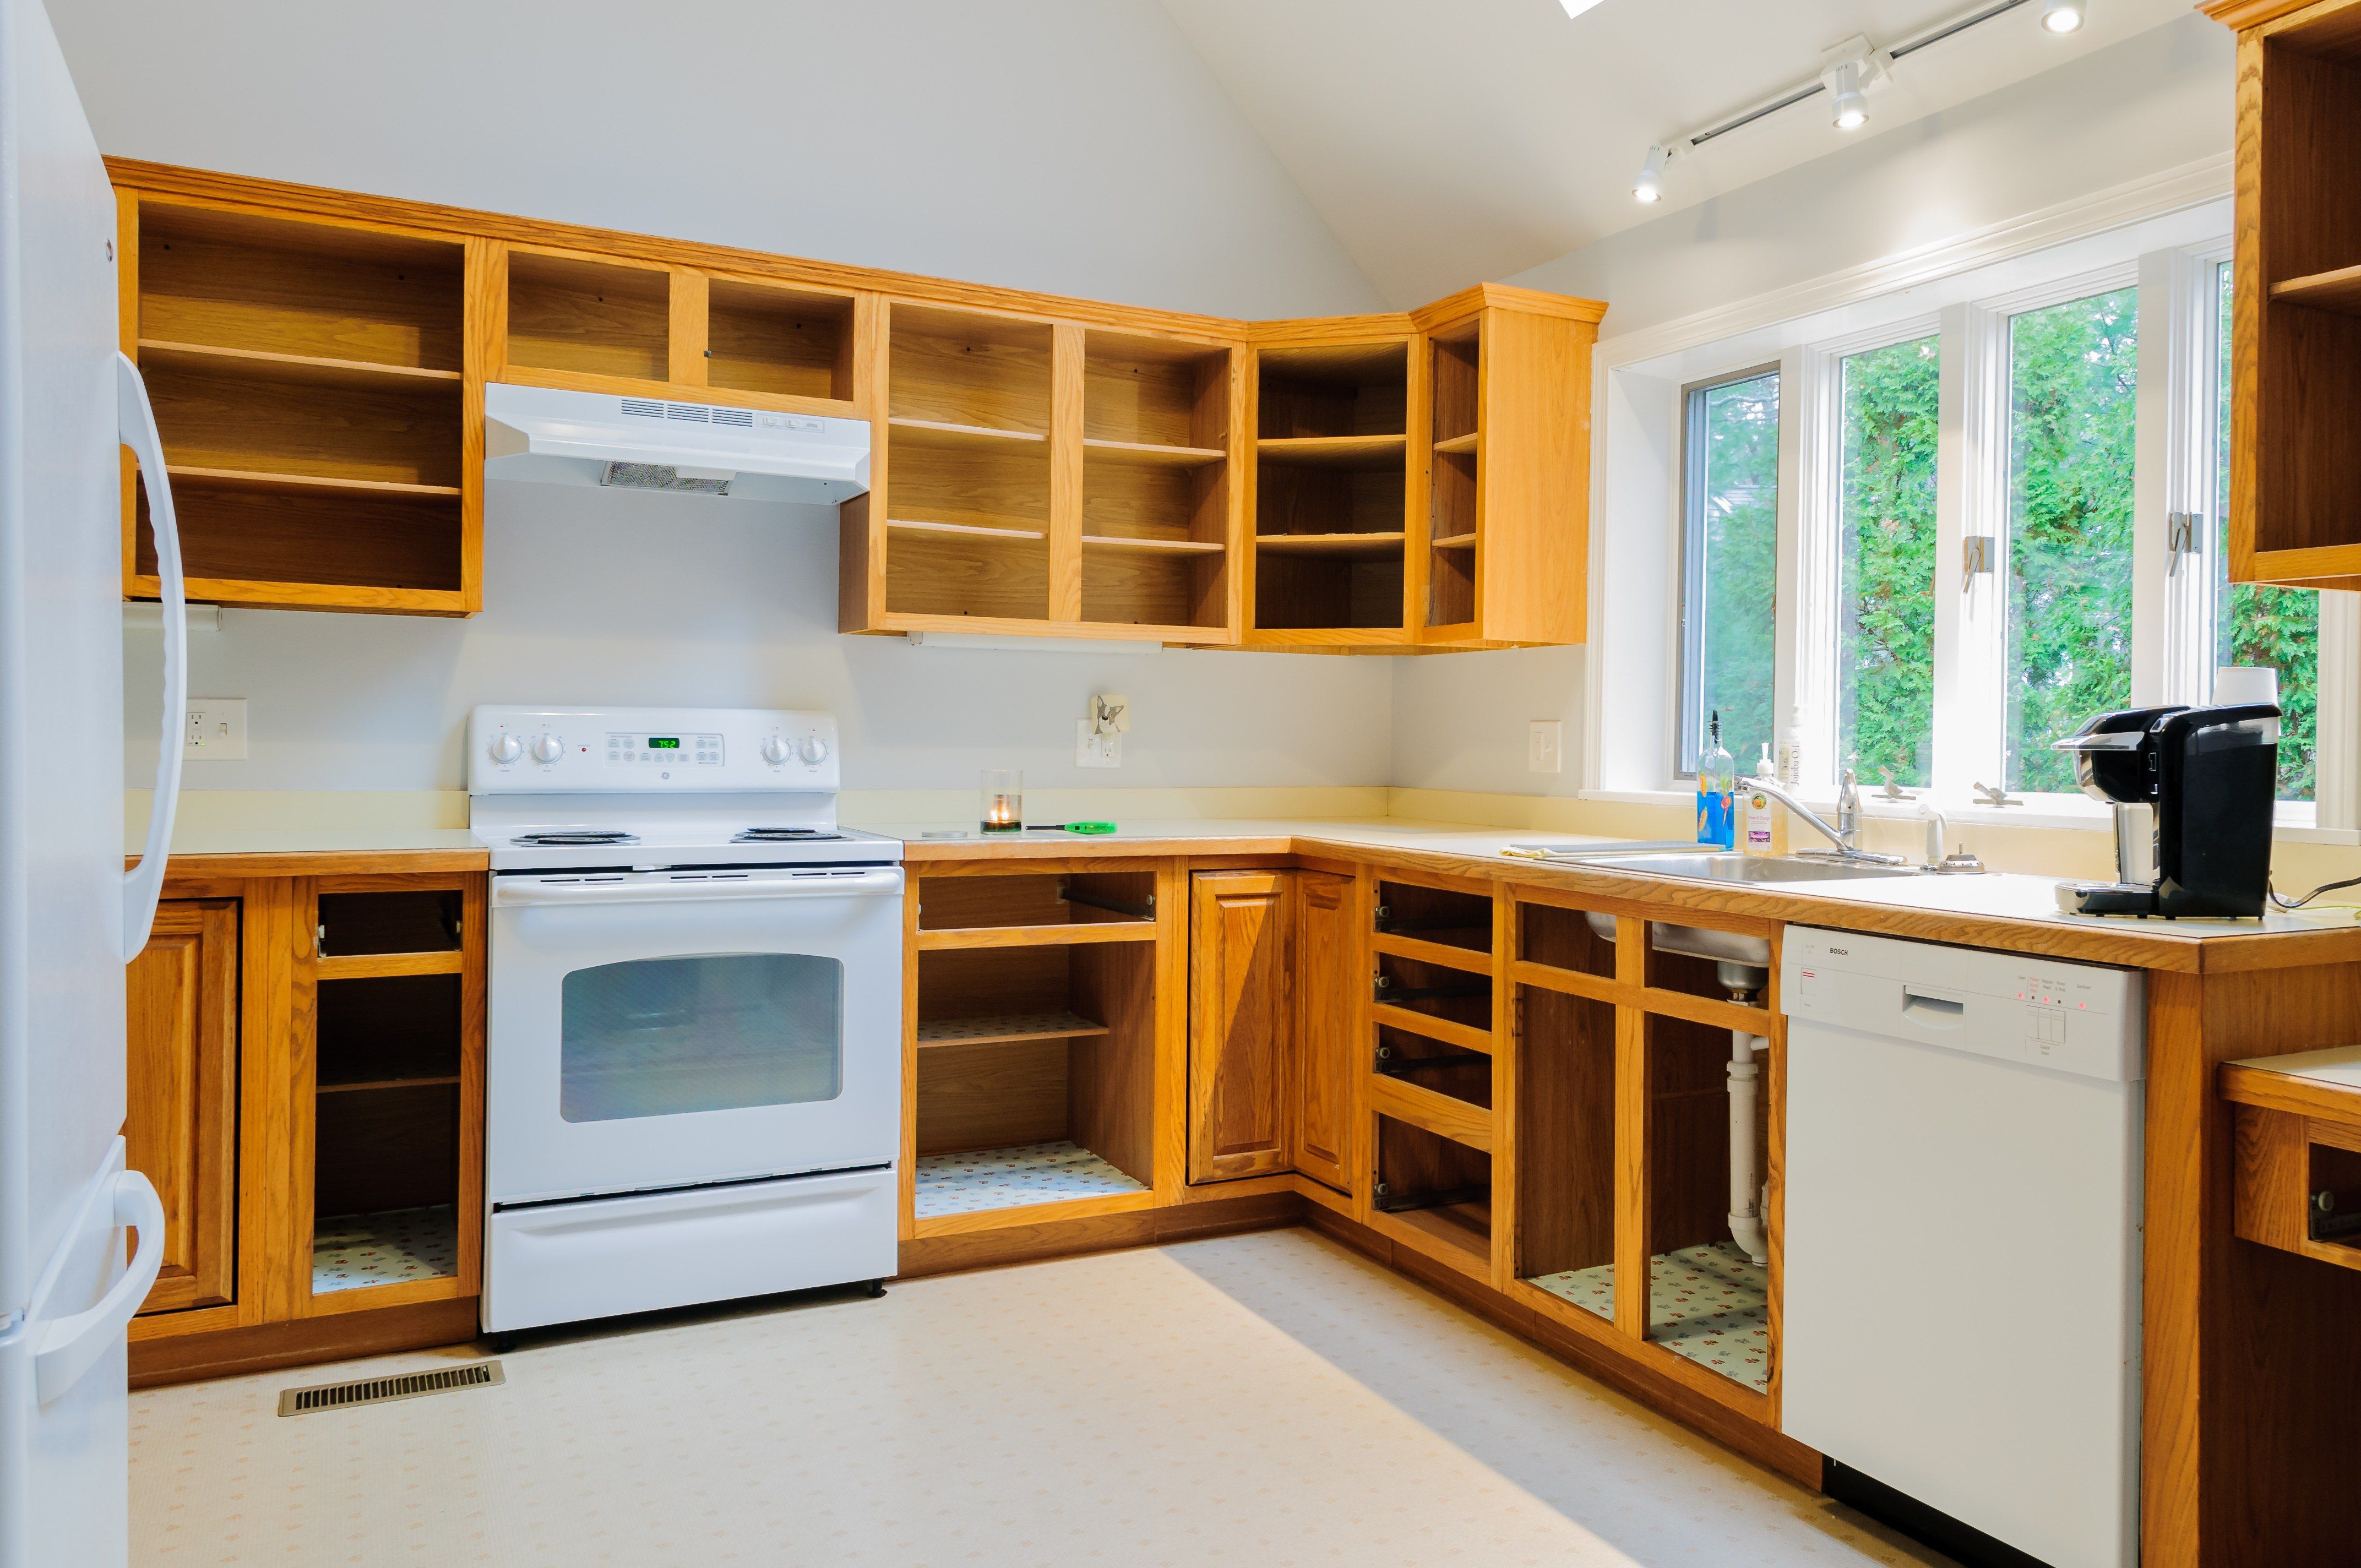 Kitchen Resurface Cabinets Kitchen Refacing Costs Cabinet Refacing Diy Cabinet Doors